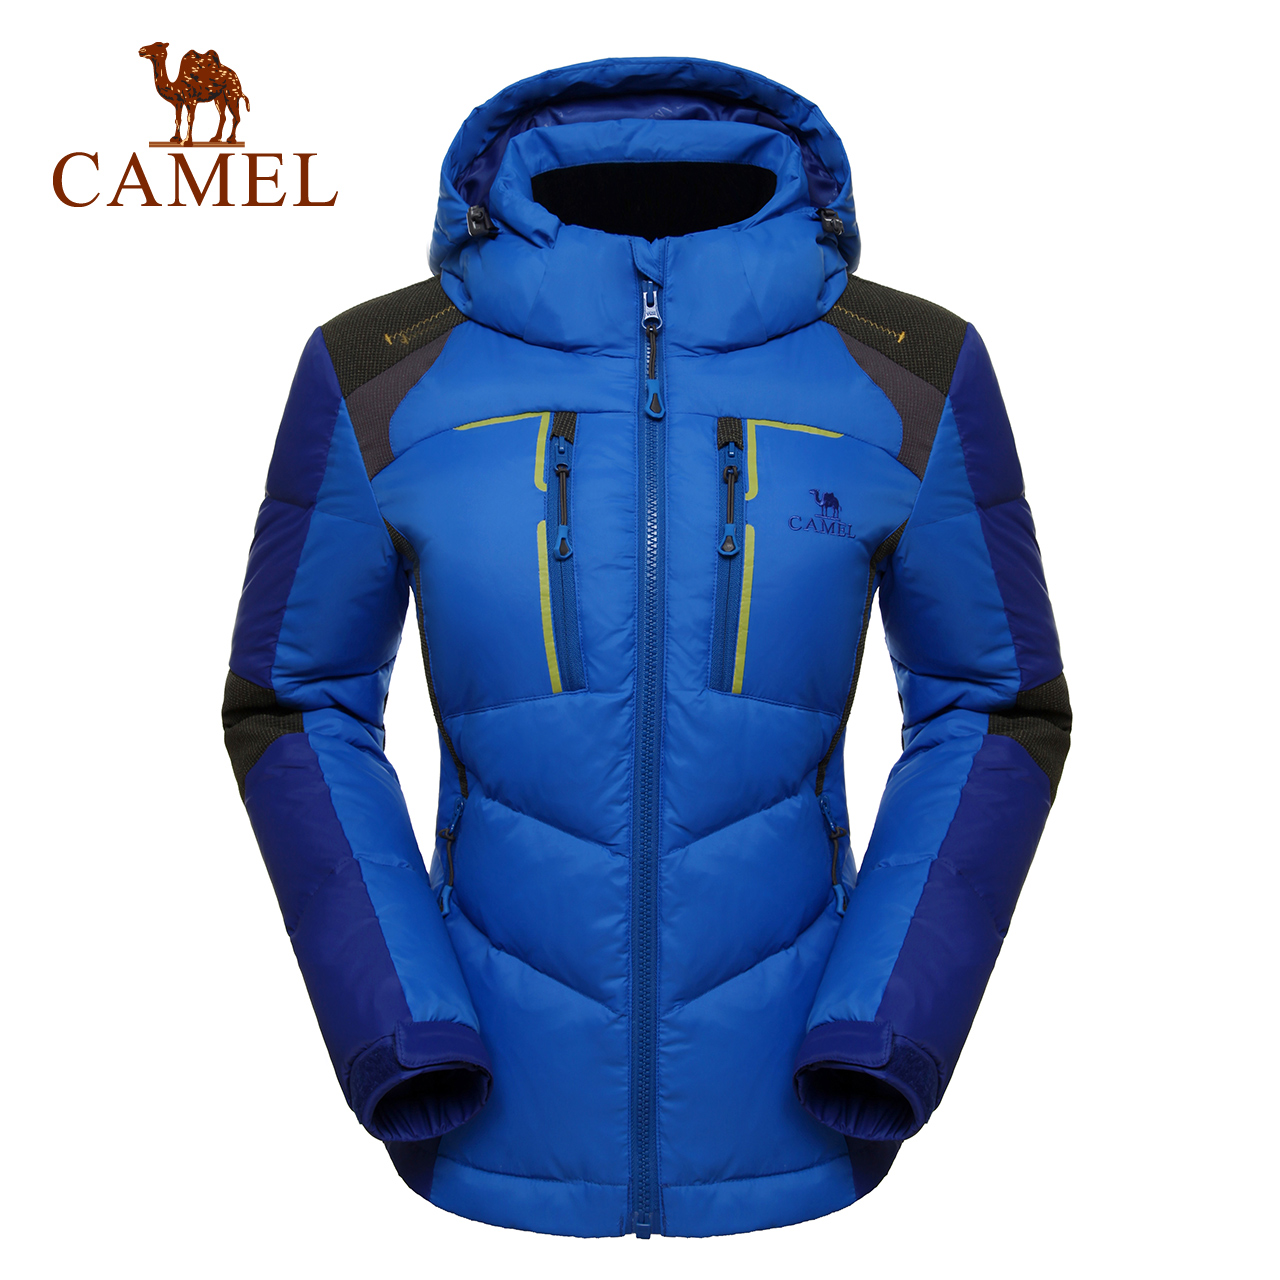 [The goods stop production and no stock][Broken code clearance] camel outdoor female down jacket breathable warm white duck down warm windproof down jacket